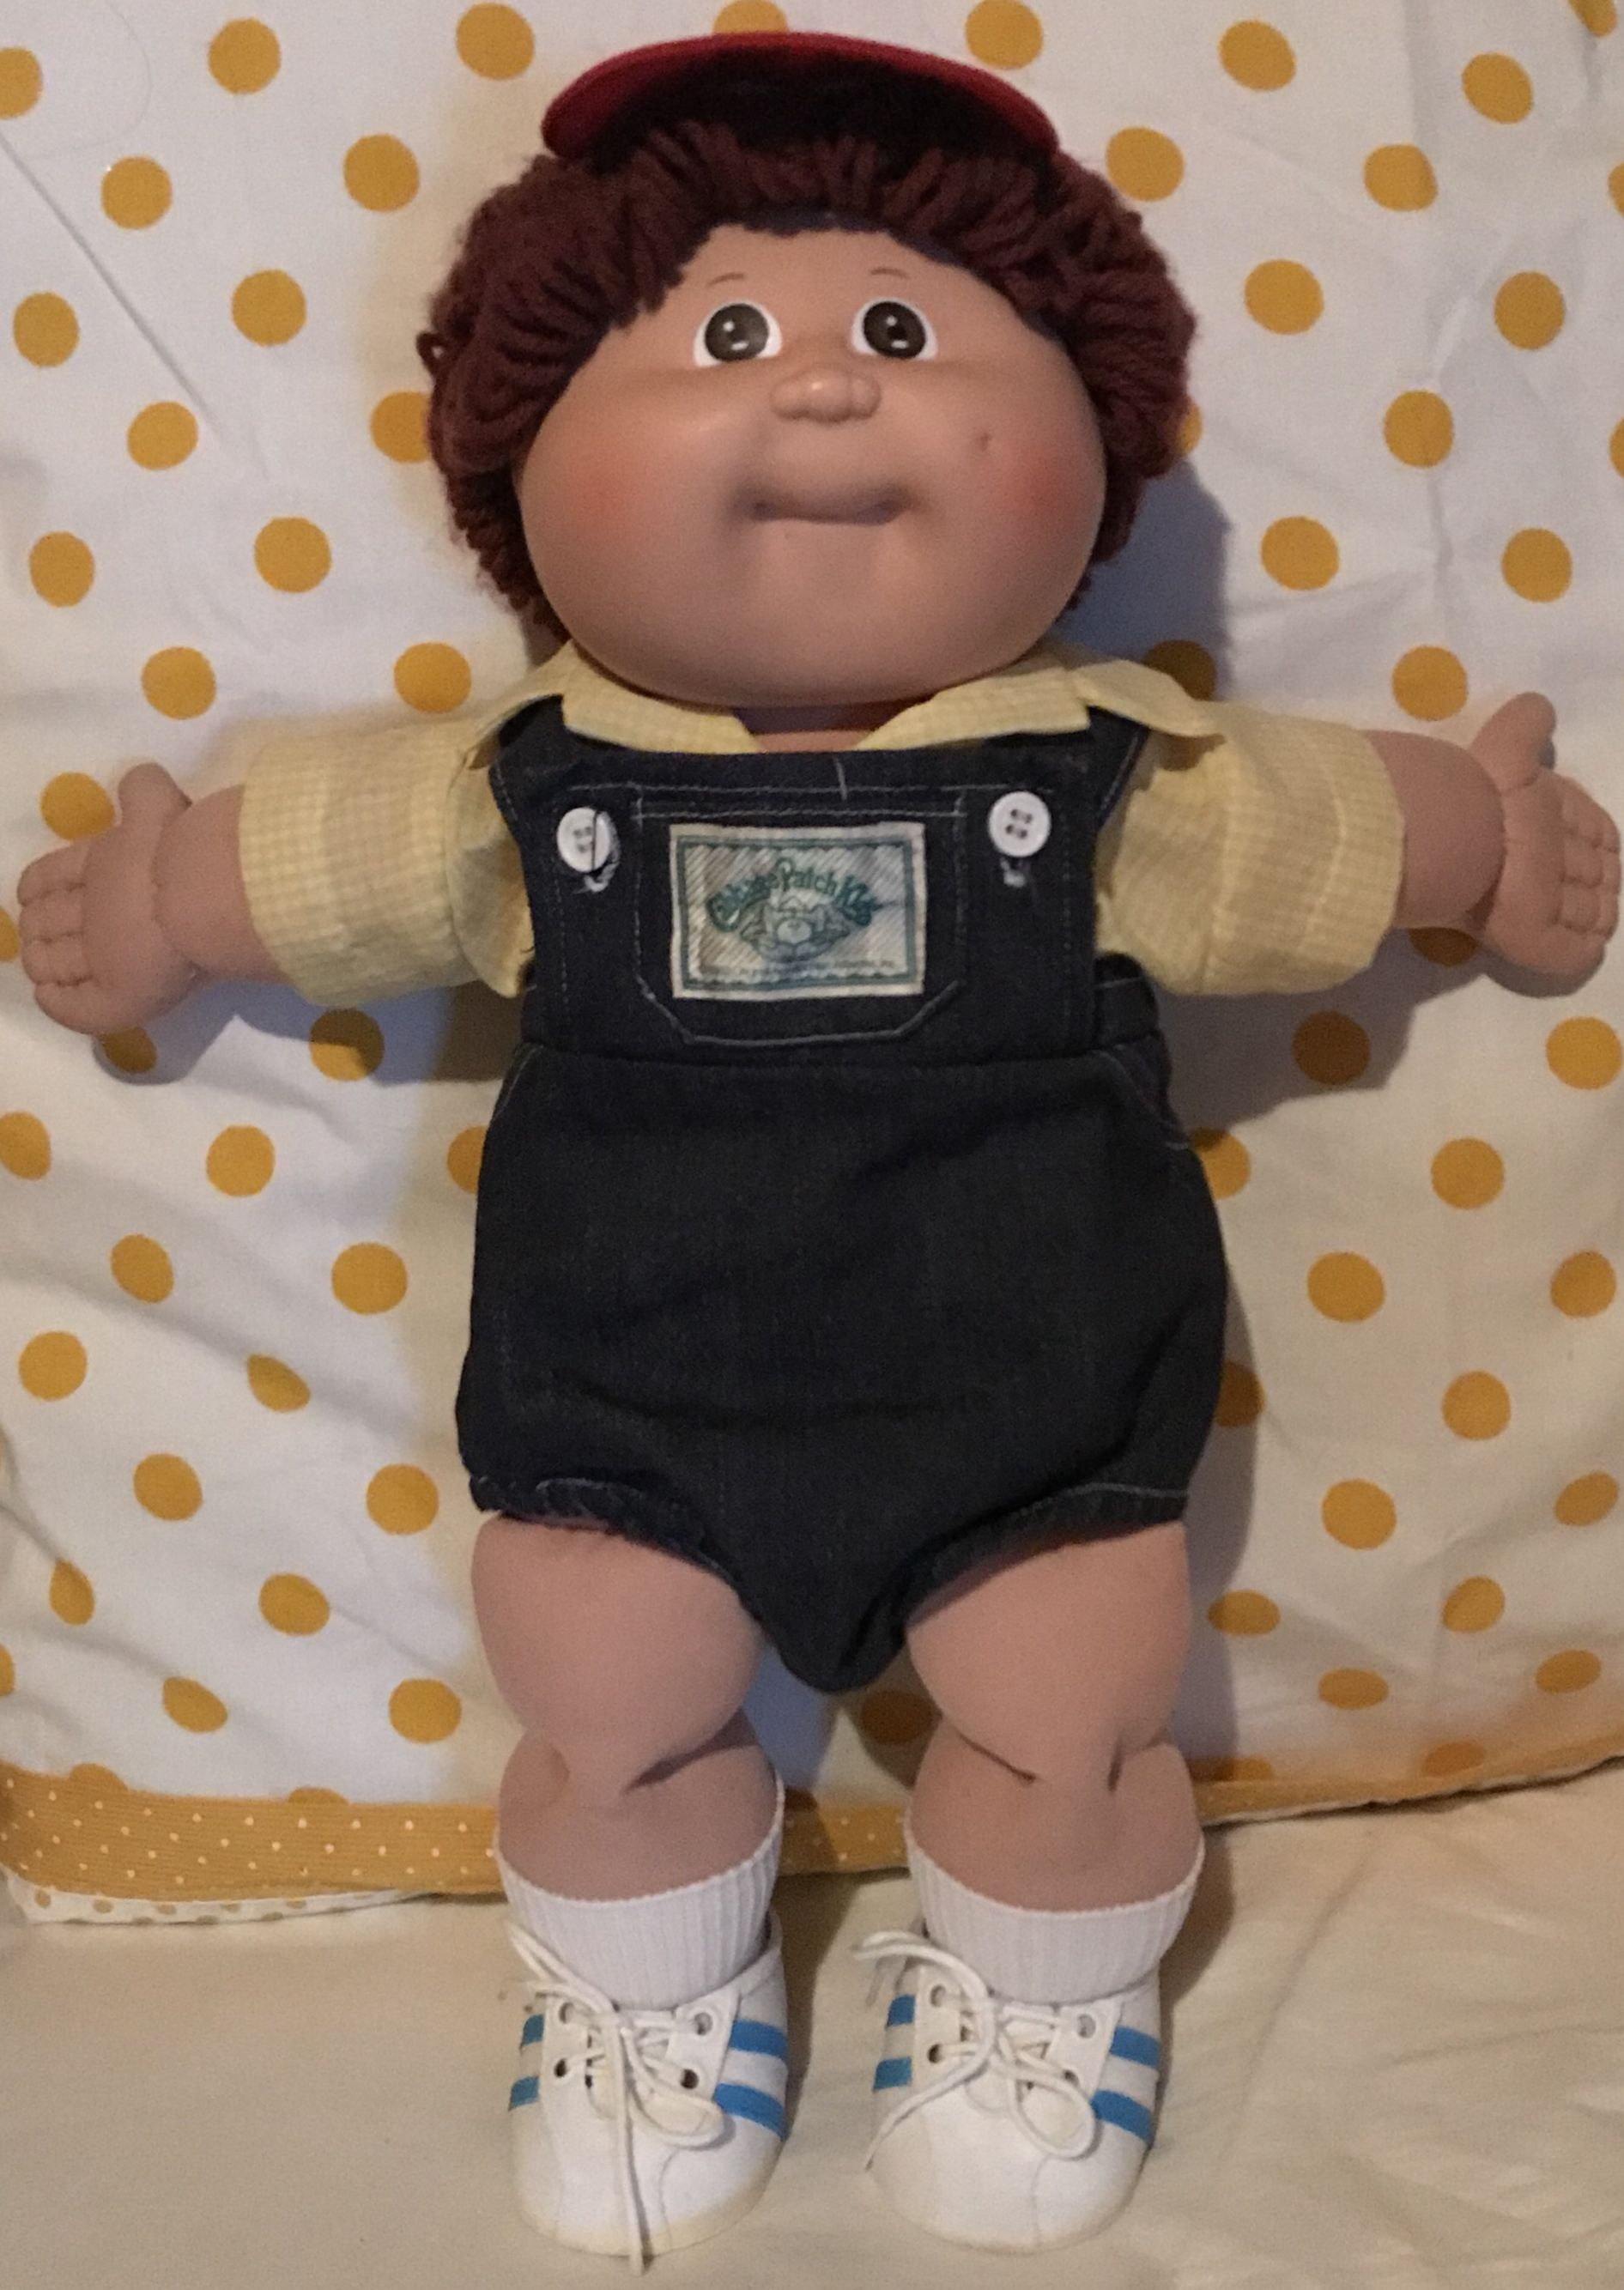 Vintage Cabbage Patch Kids Doll 1984 Hm 3 P Factory Auburn Hair Brown Eyed Boy Vintage Cabbage Patch Dolls Cabbage Patch Kids Boy Cabbage Patch Kids Dolls